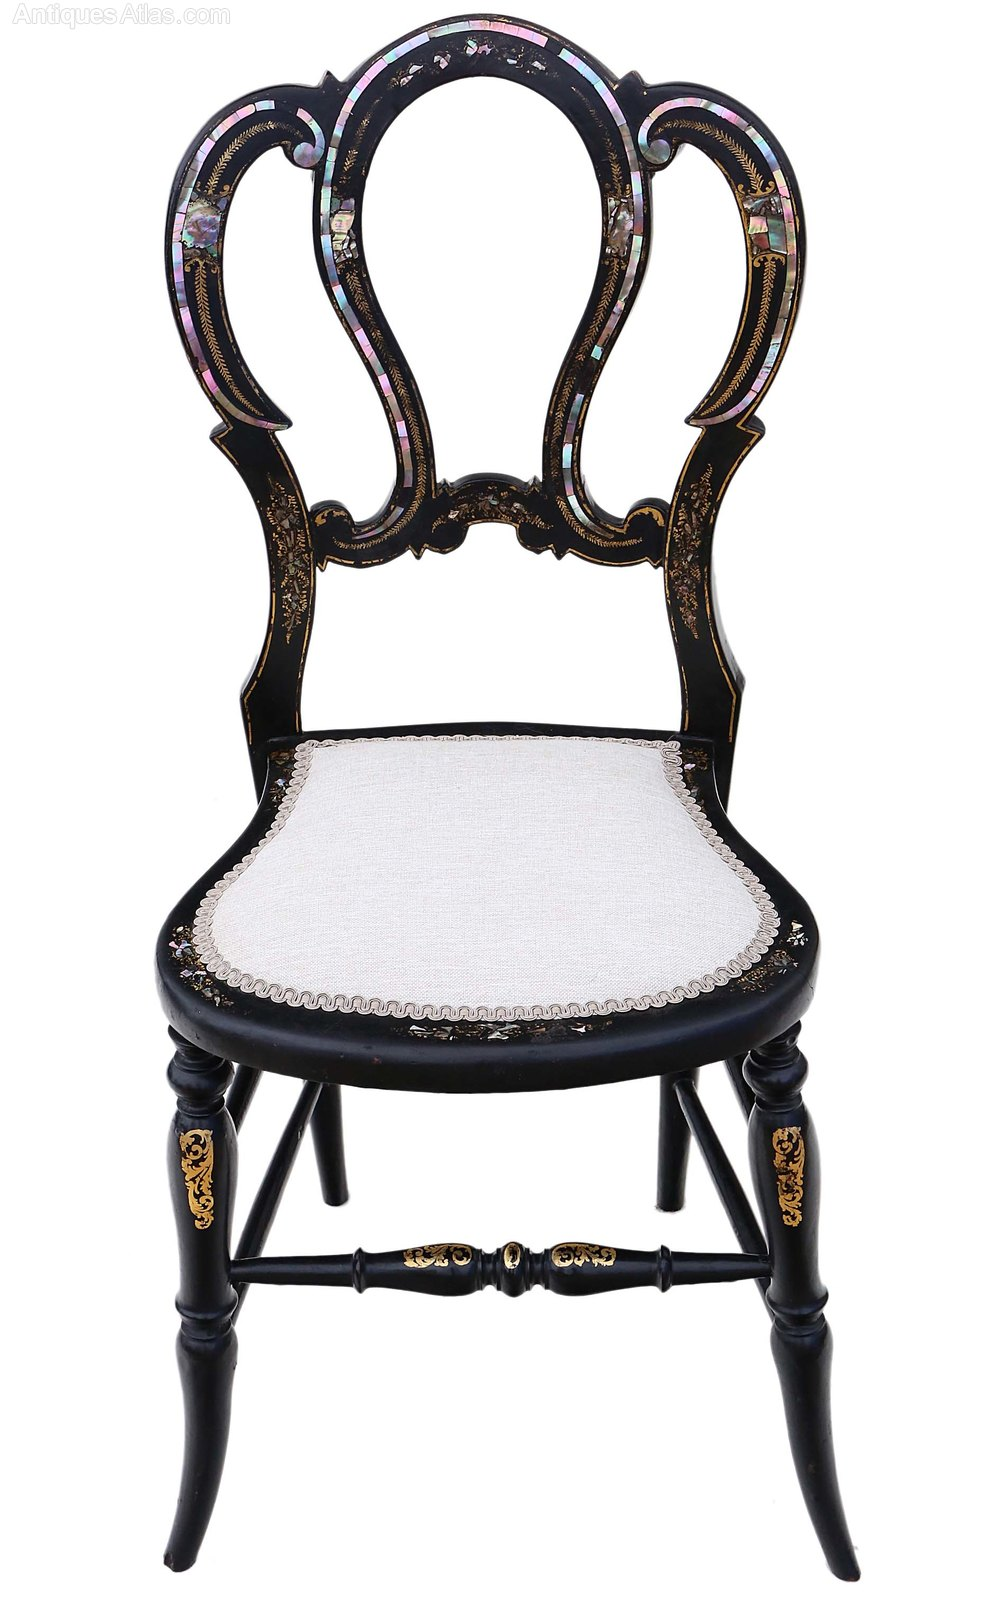 Attirant Victorian Mother Of Pearl Inlaid Bedroom Chair ...